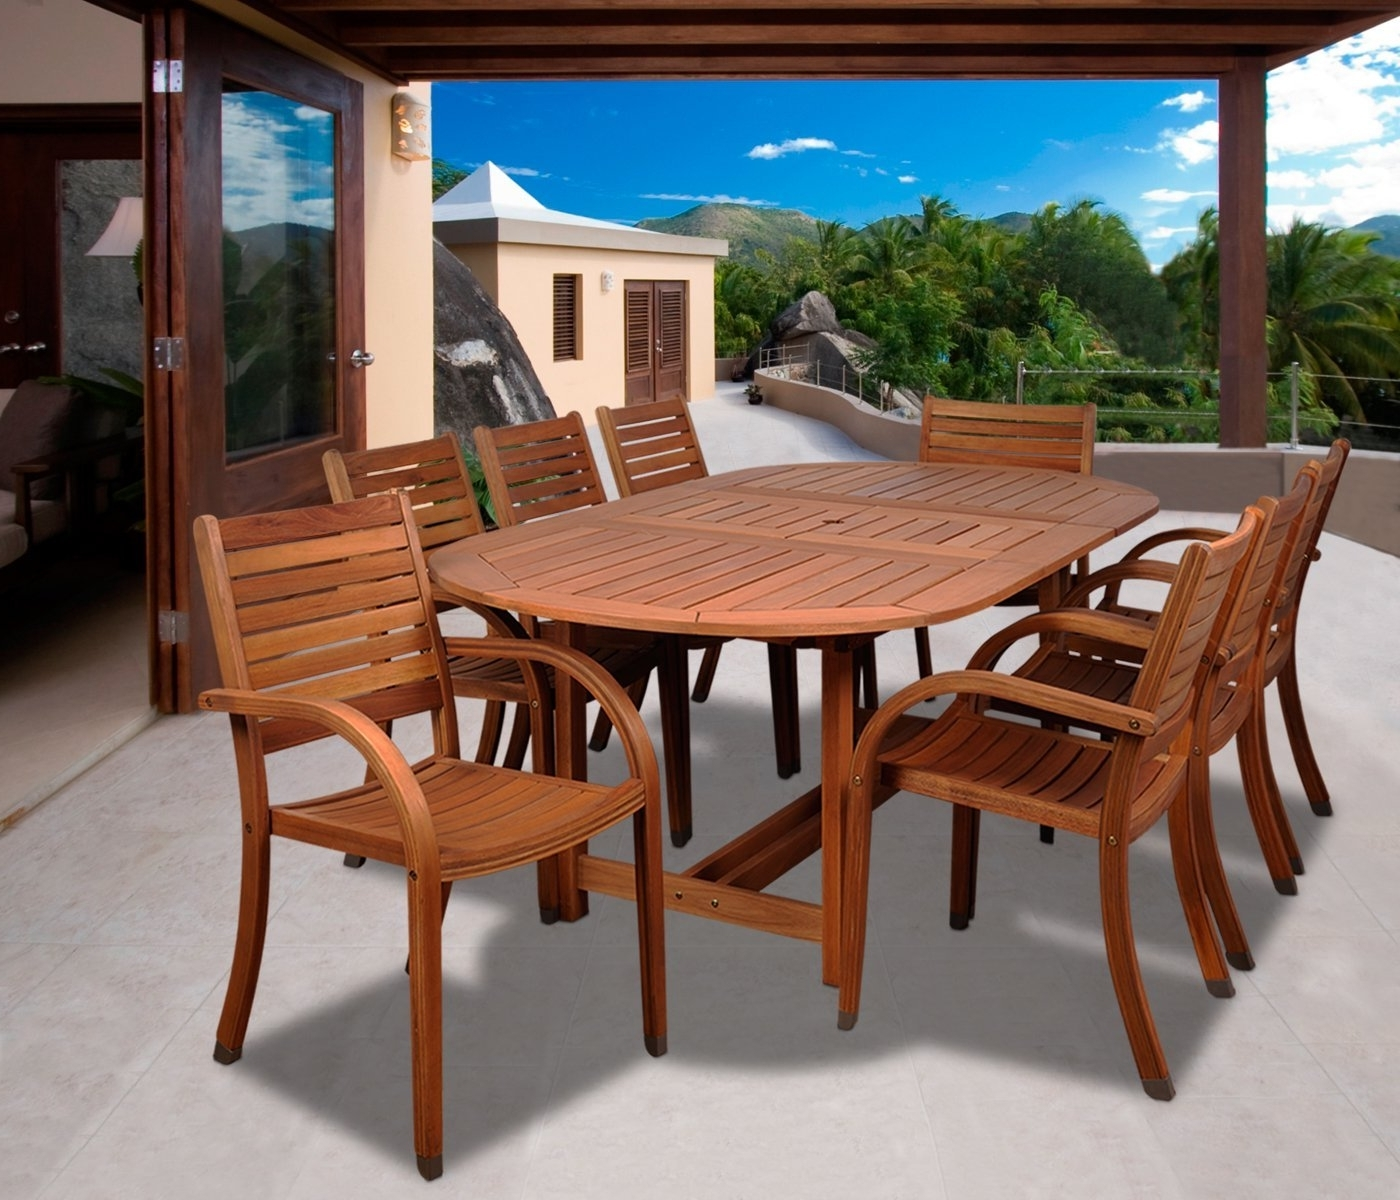 Well Known Outdoor Extendable Dining Tables In Best Eucalyptus Hardwood Furniture & Patio Sets In 2018 – Teak Patio (View 12 of 25)